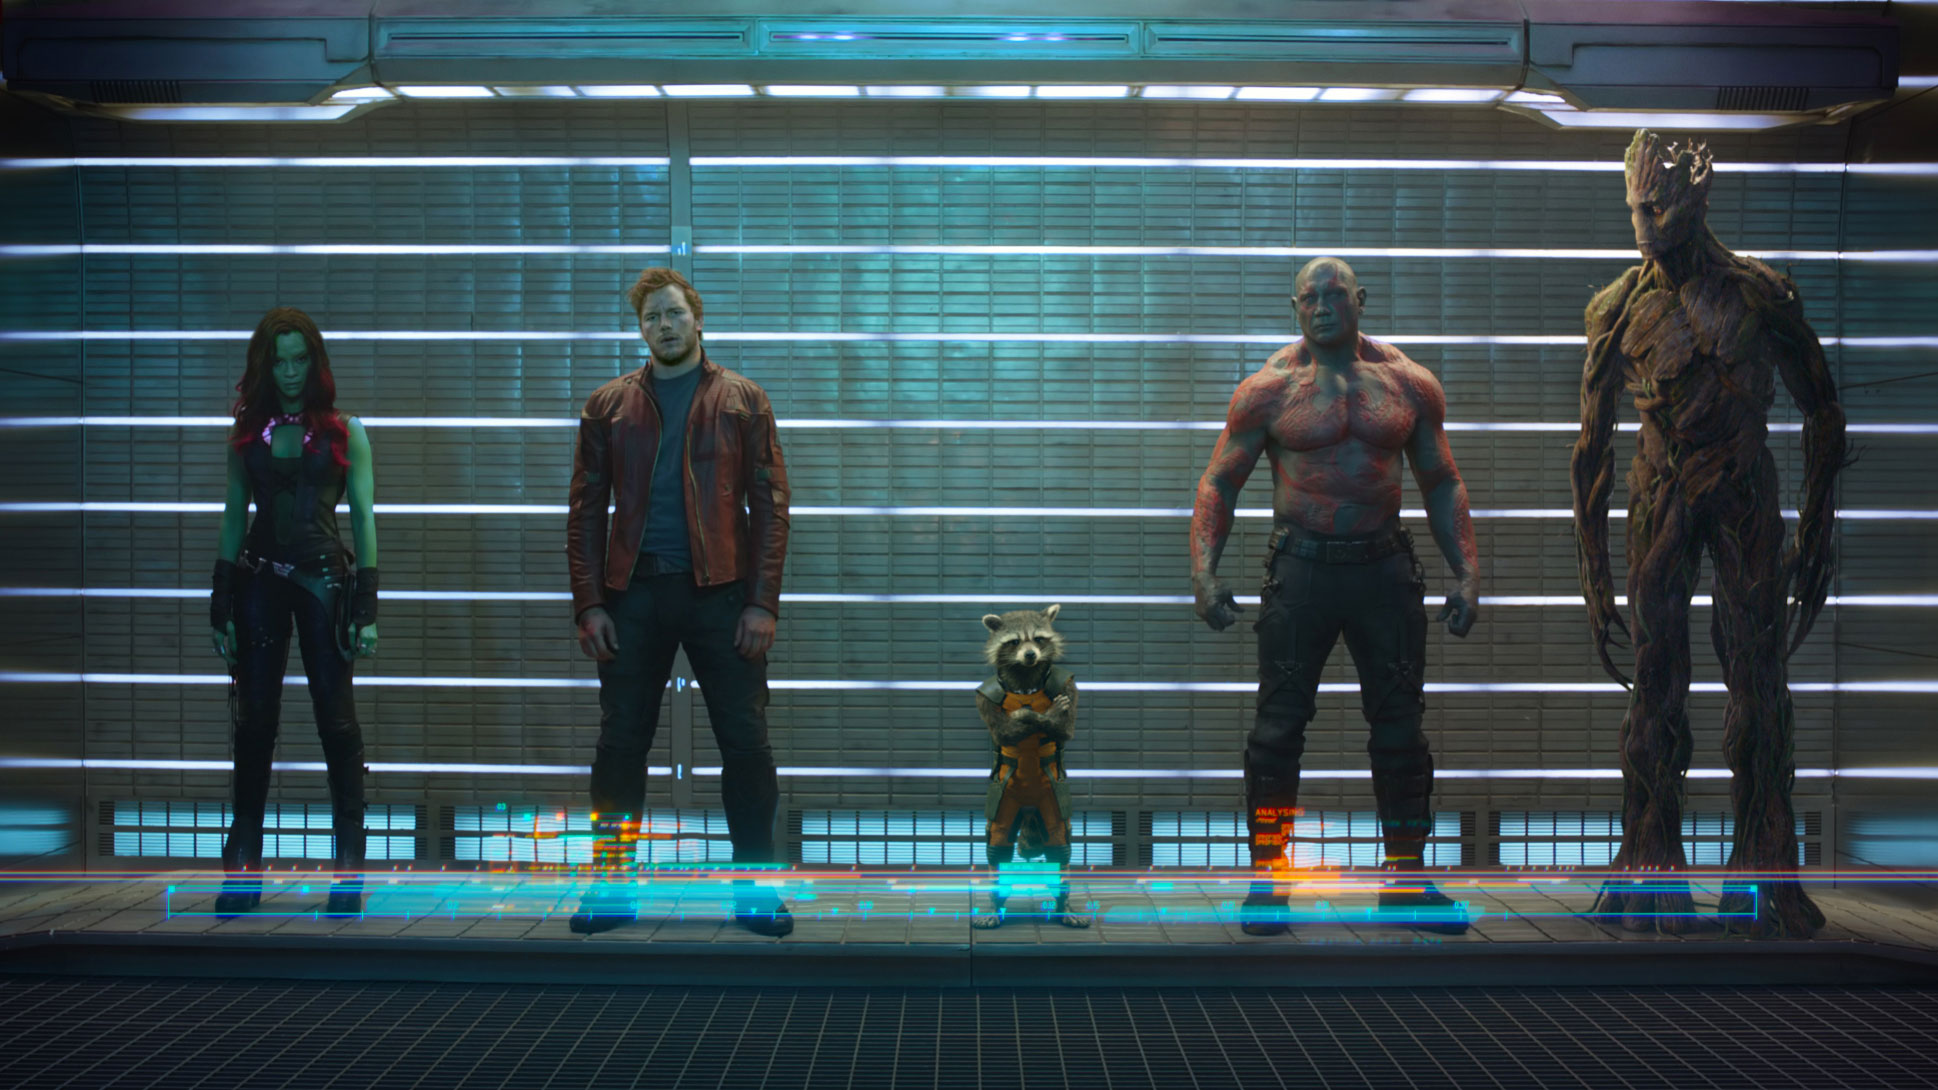 8. 'Guardians Of The Galaxy'